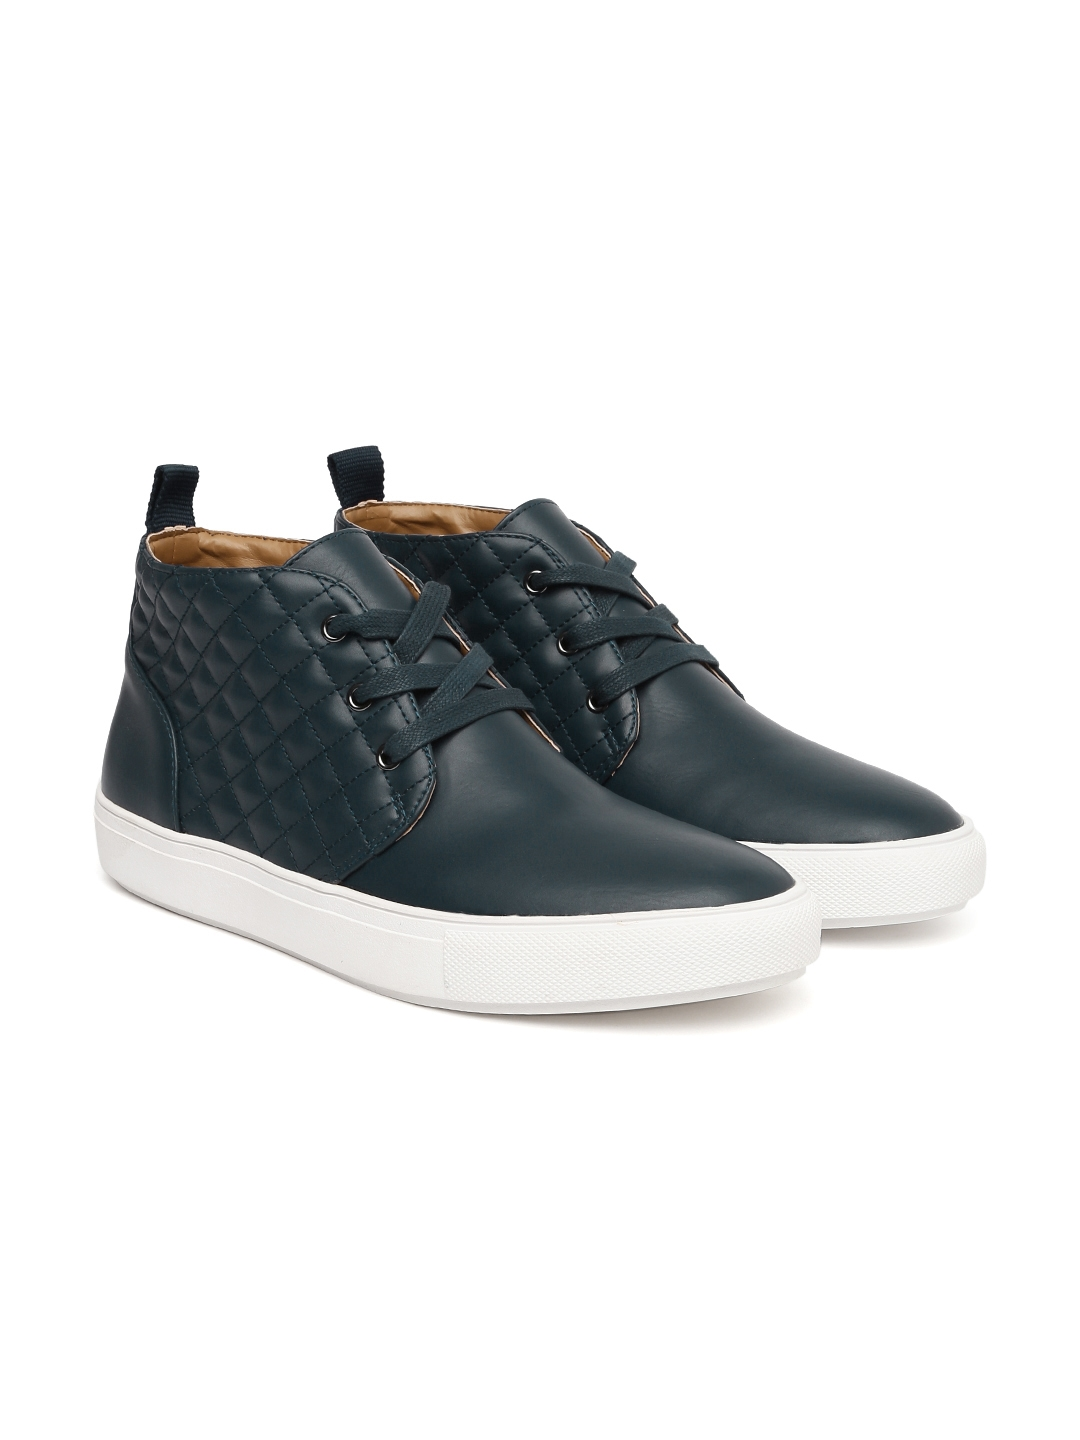 40934da5c7b Buy Steve Madden Men Navy Blue Quilted Mid Top Sneakers - Casual ...